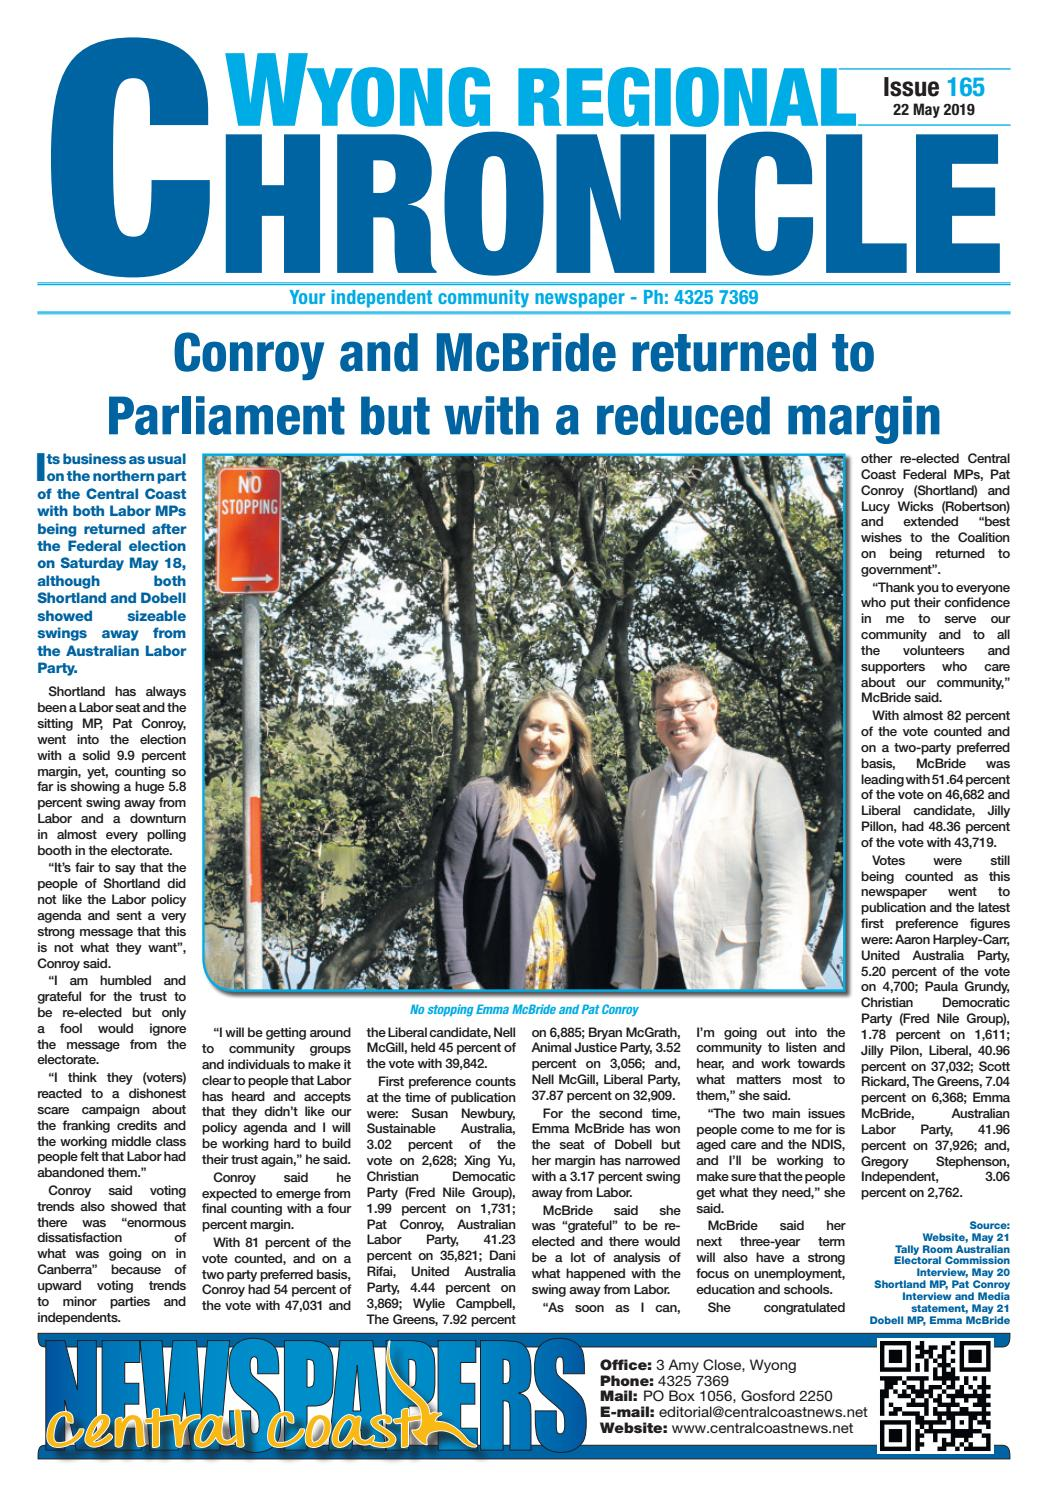 Issue 165 of Wyong Regional Chronicle by Central Coast Newspapers